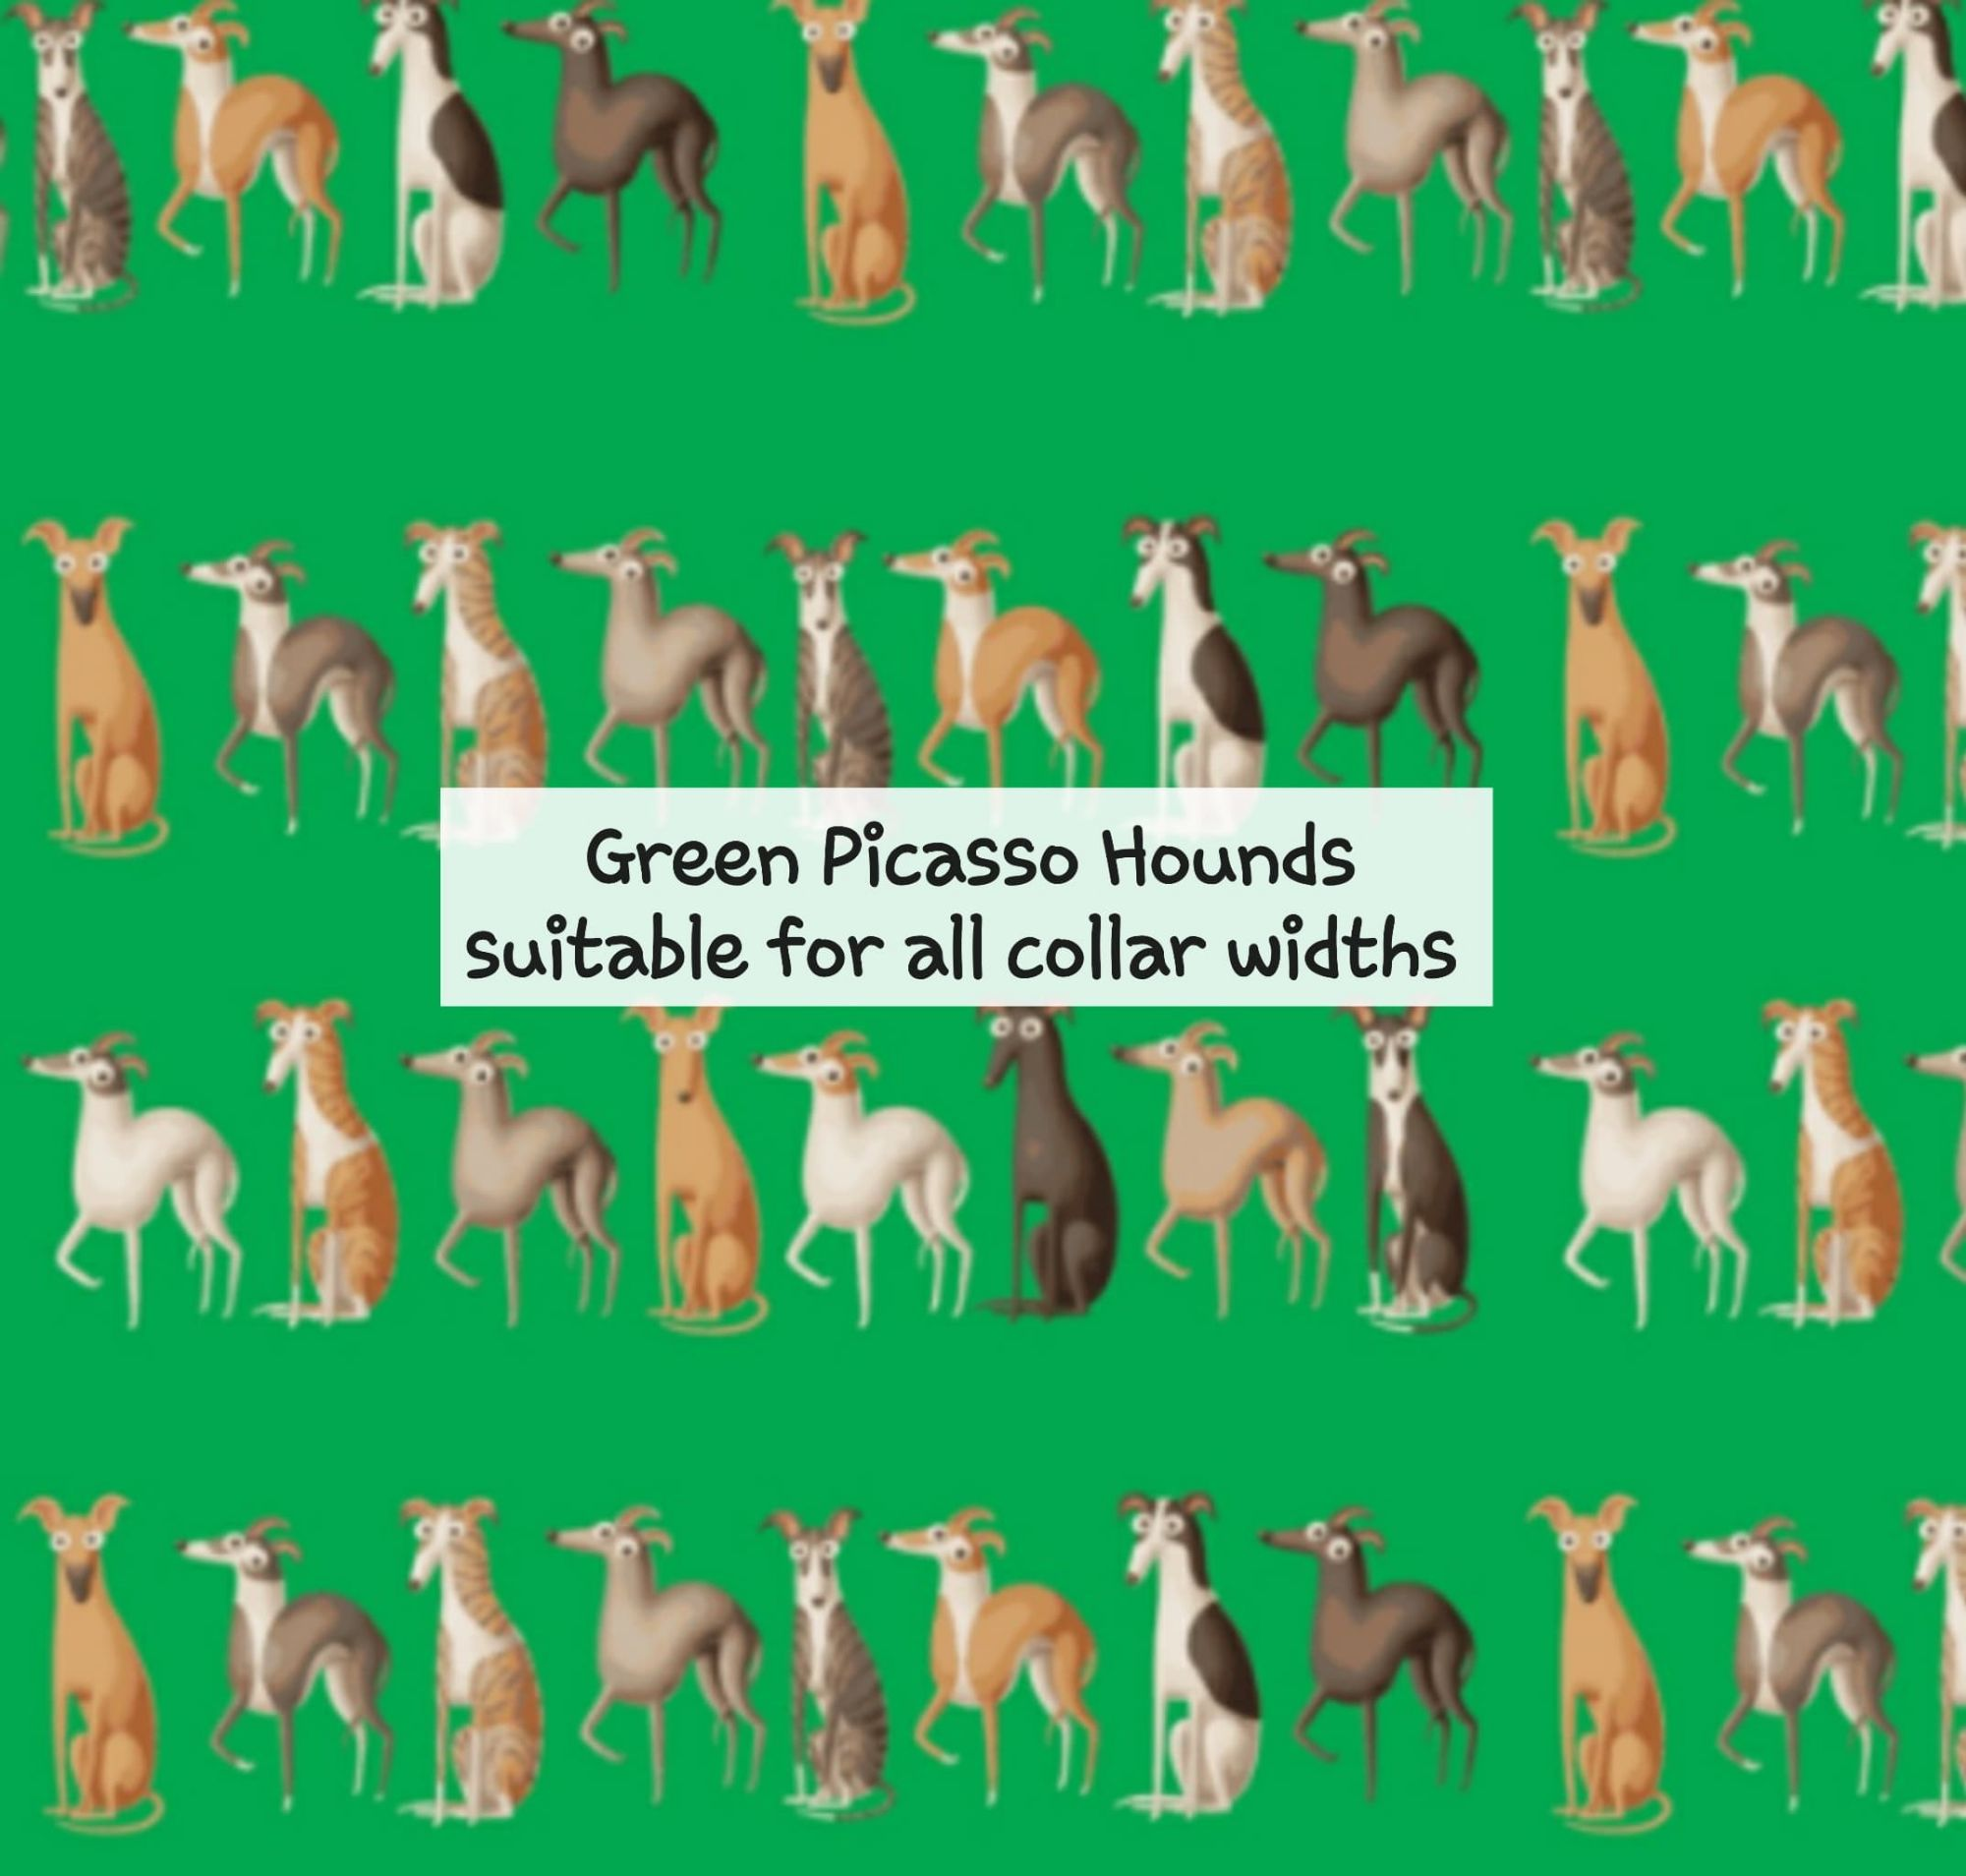 Green Picasso Hounds